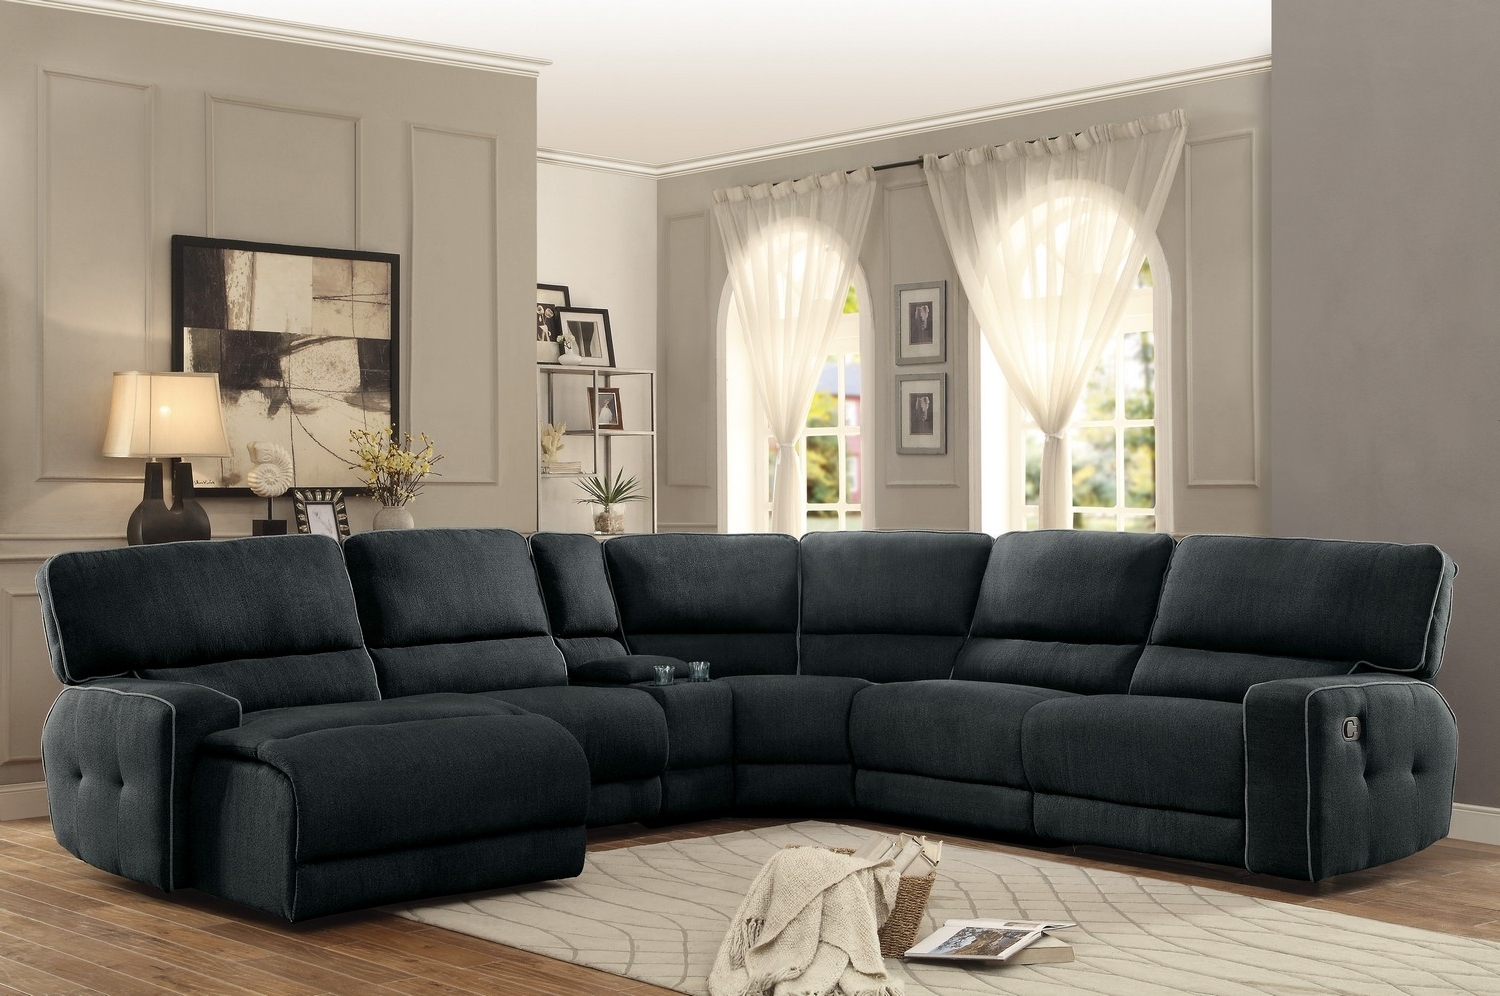 Homelegance Keamey Reclining Sectional Sofa Set A – Polyester With 2017 Couches With Chaise And Recliner (View 9 of 15)